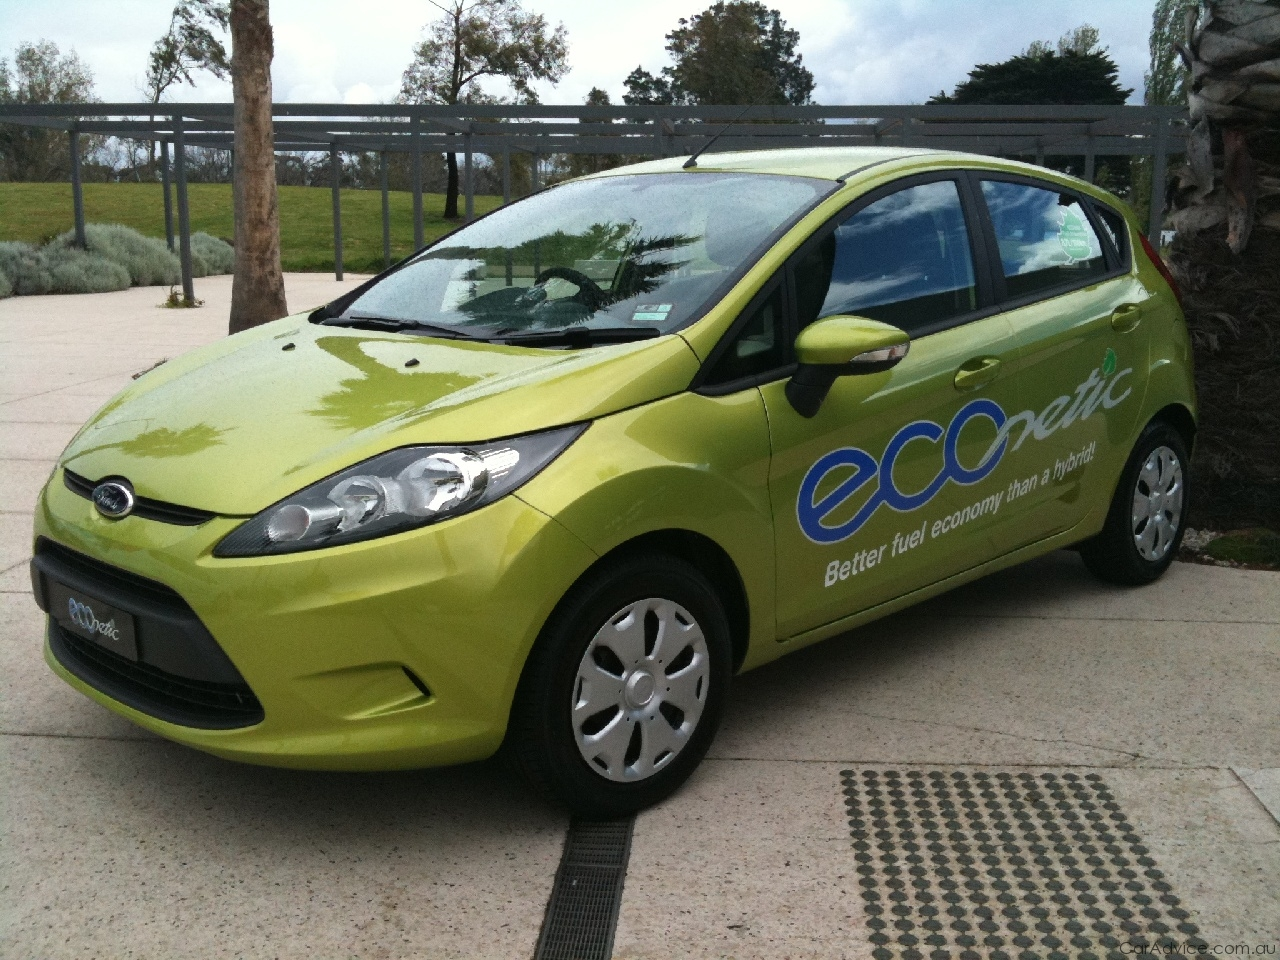 Ford Fiesta Econetic - Australiau0027s most fuel efficient car & Ford Fiesta Econetic - Australiau0027s most fuel efficient car ... markmcfarlin.com